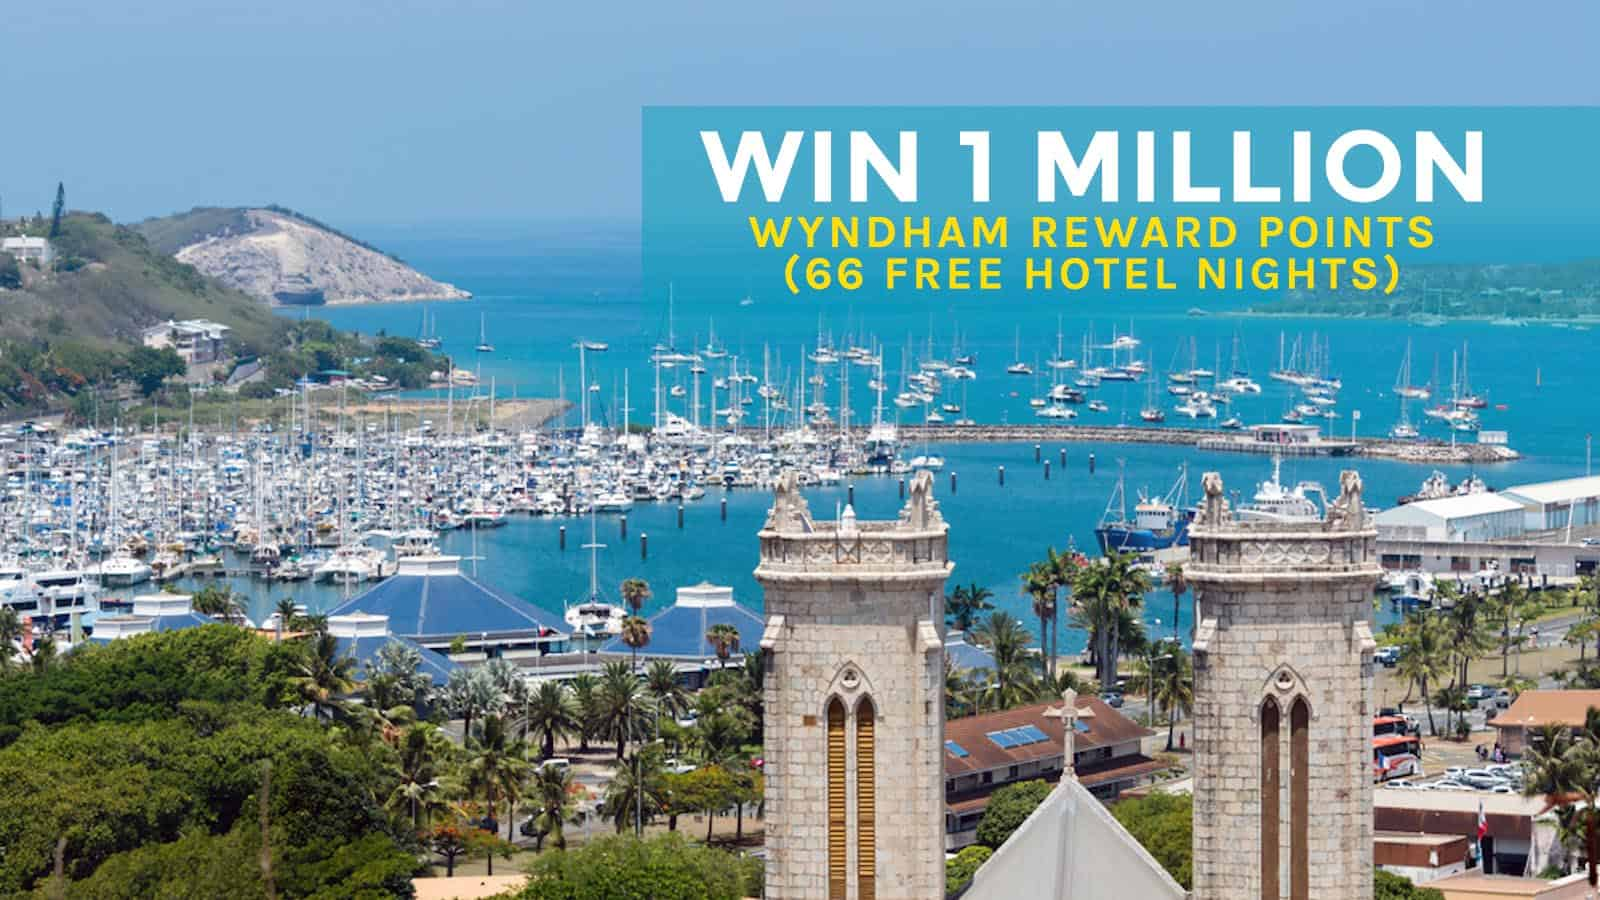 PROMO ALERT! Win 1 Million Wyndham Reward Points (66 Free Nights)!